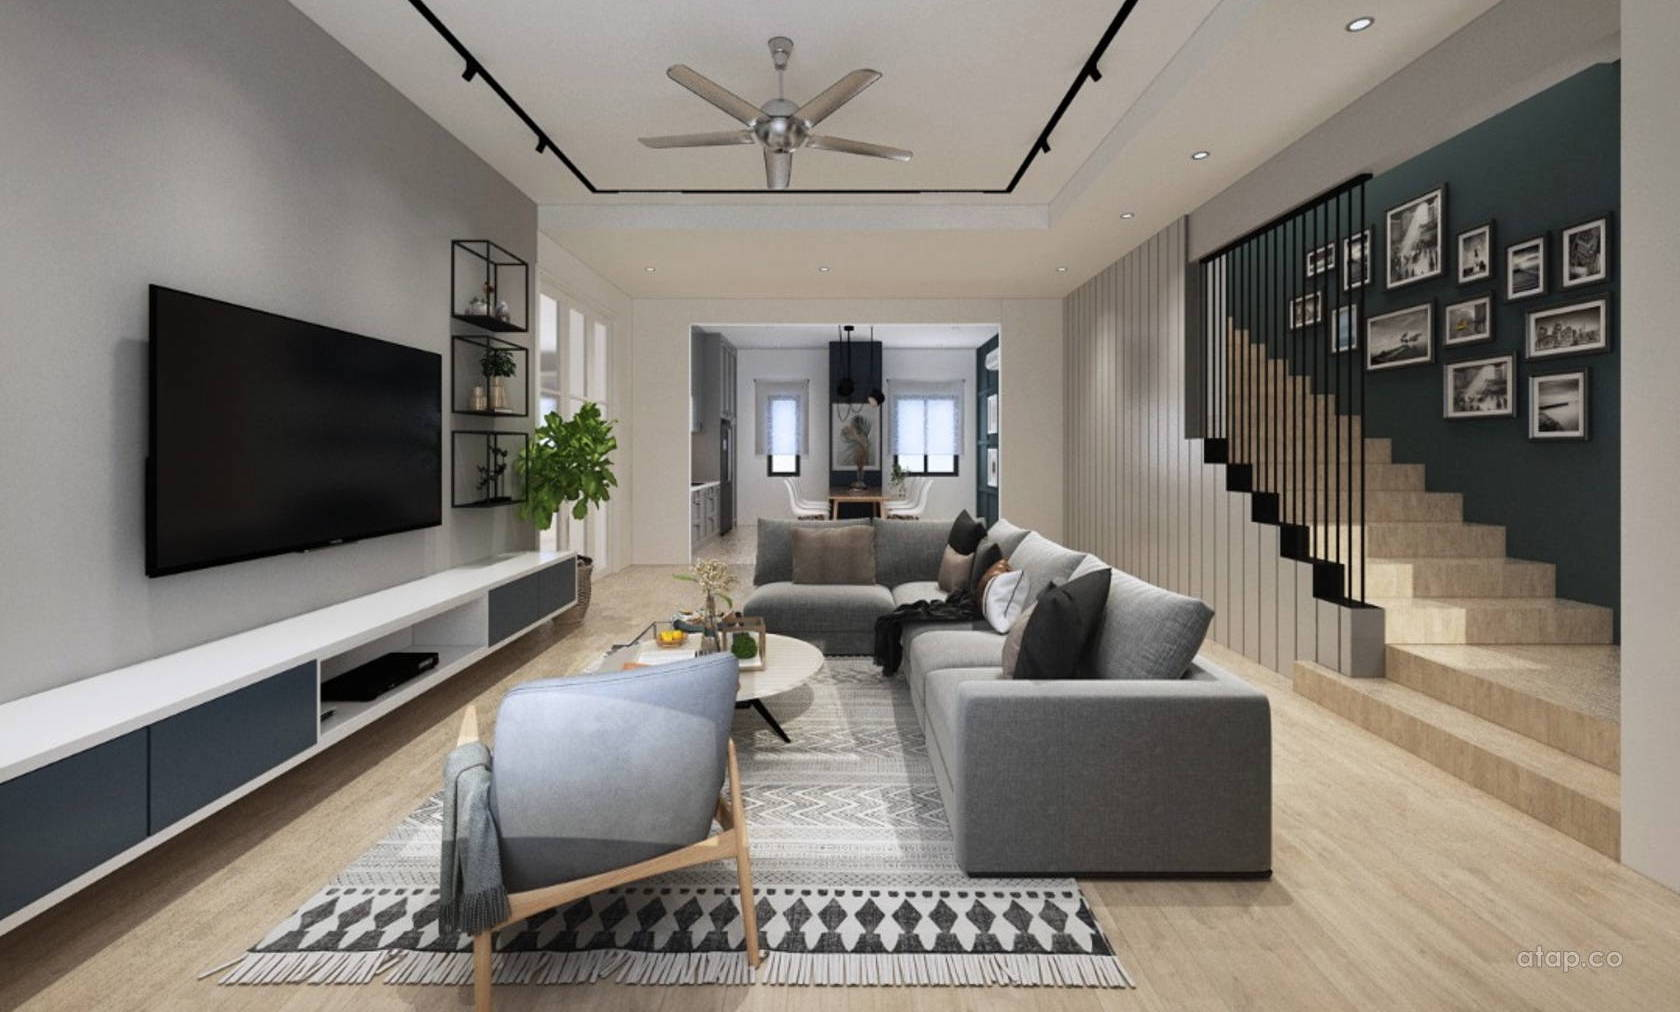 Blacks and grays accents with wood patterns lend a fuse of Contemporary and Scandinavian style